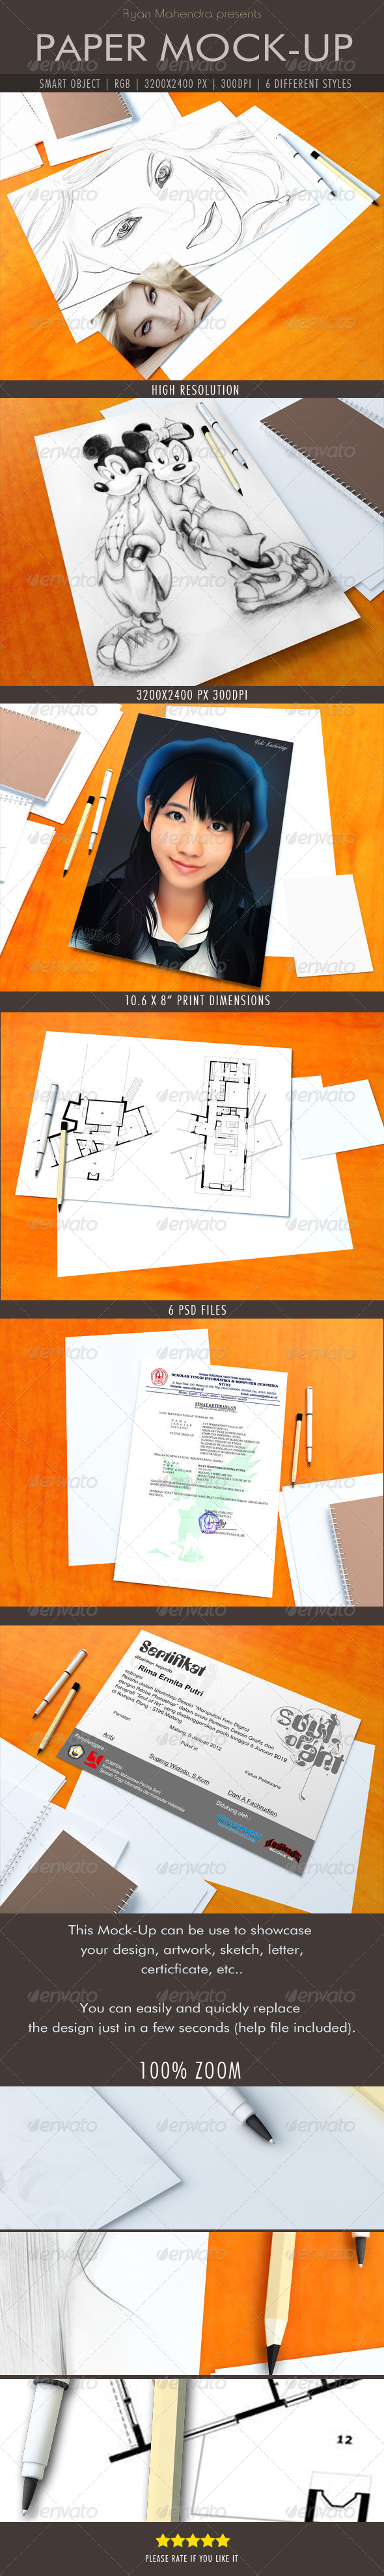 GraphicRiver Paper Mock-Up 5544141